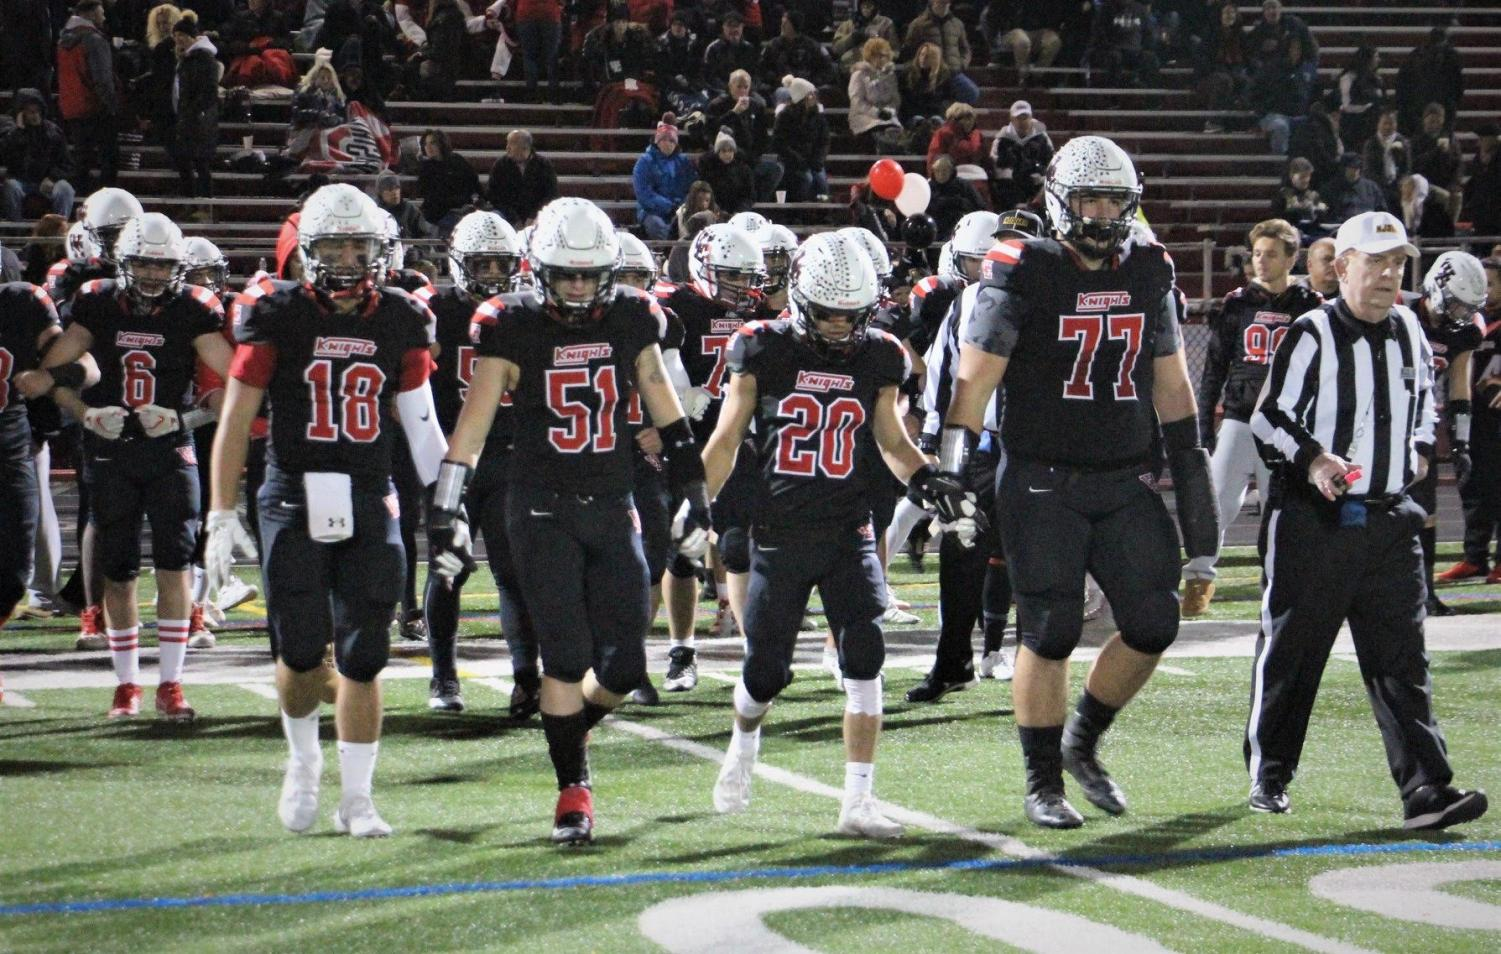 The Football Knights captains take the field at the West Side game on Nov. 1. West Essex clinched their fourth straight conference title after toppling West Side 23-20.